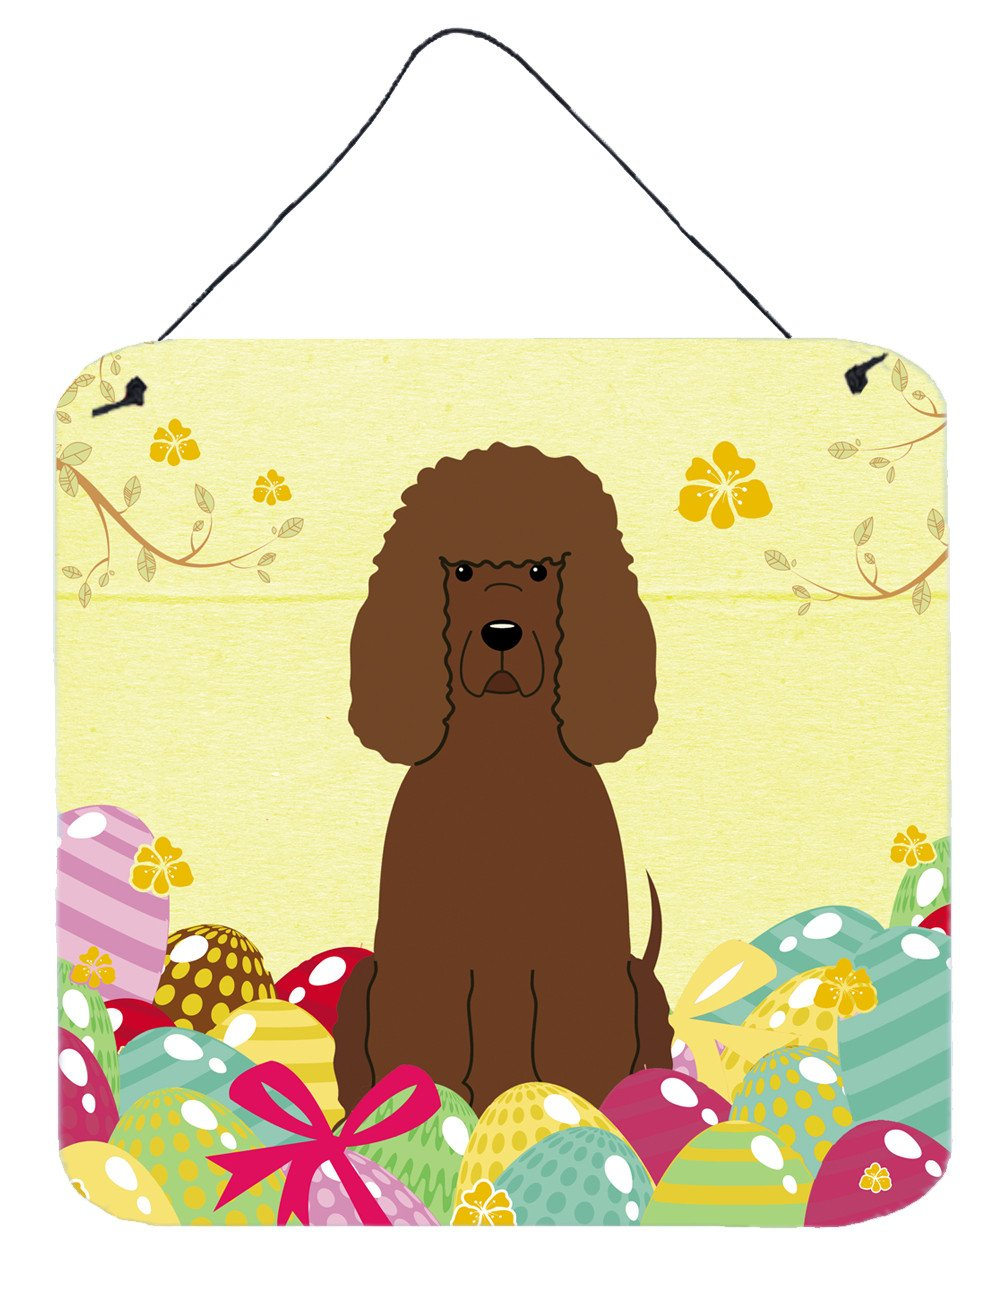 Easter Eggs Irish Water Spaniel Wall or Door Hanging Prints BB6063DS66 by Caroline's Treasures